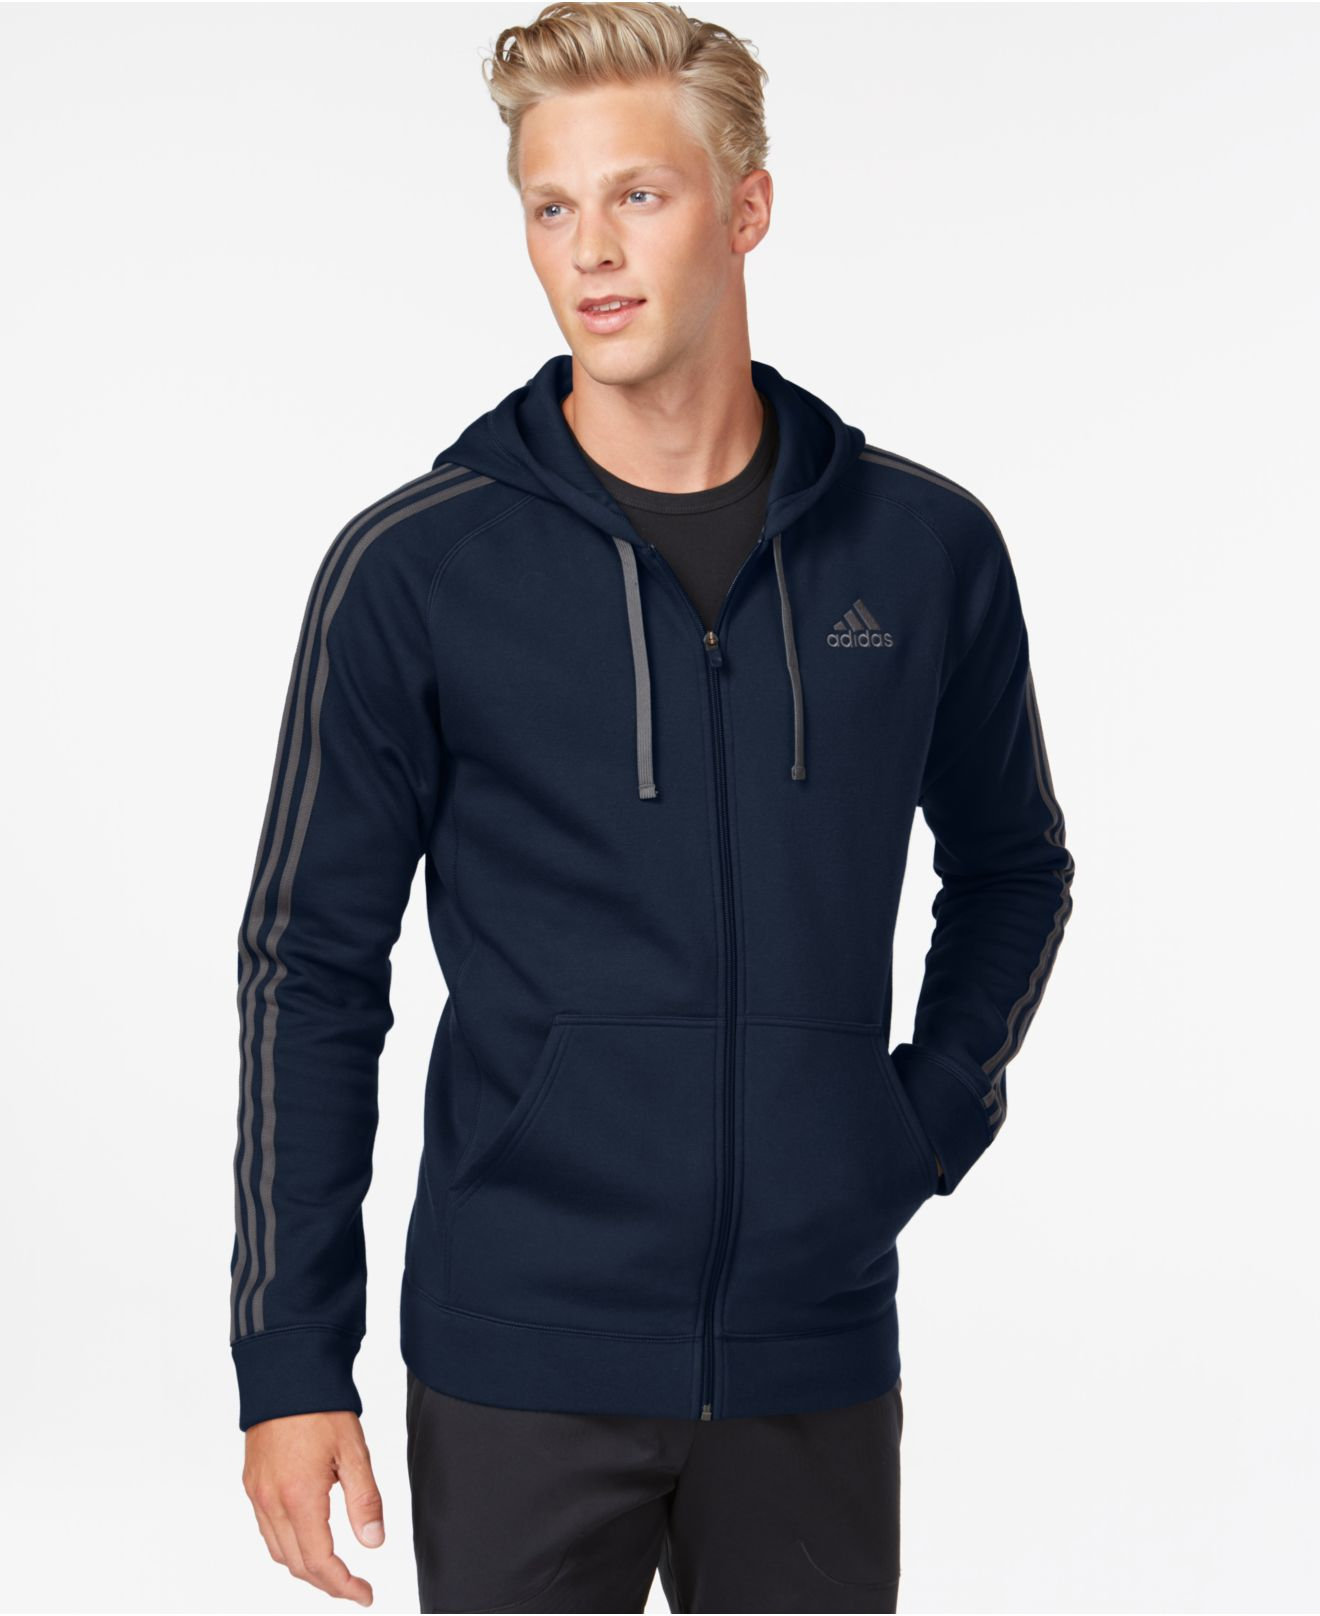 Adidas Big And Tall Essentials Cotton Fleece Full Zip